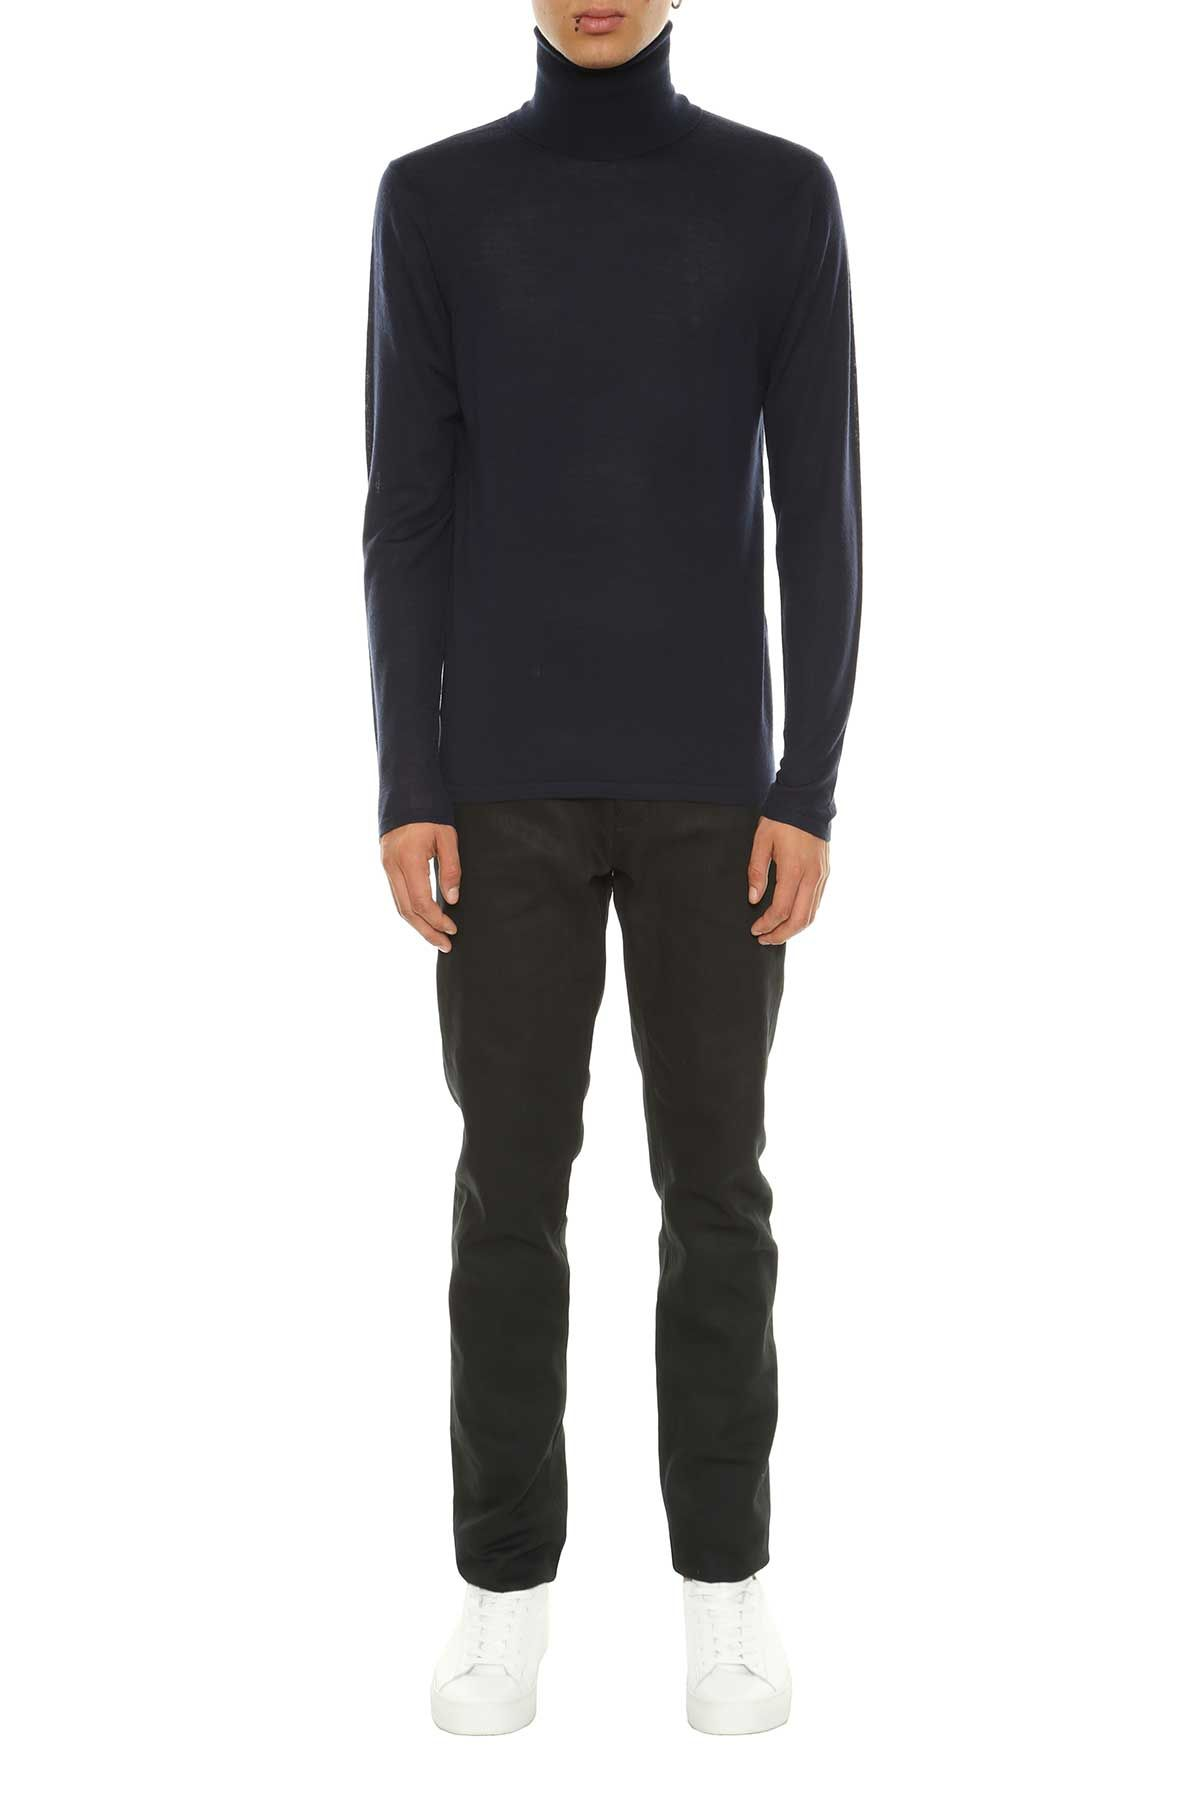 acne studios acne studios acne studios 39 norton 39 turtleneck sweater navy men 39 s sweaters. Black Bedroom Furniture Sets. Home Design Ideas